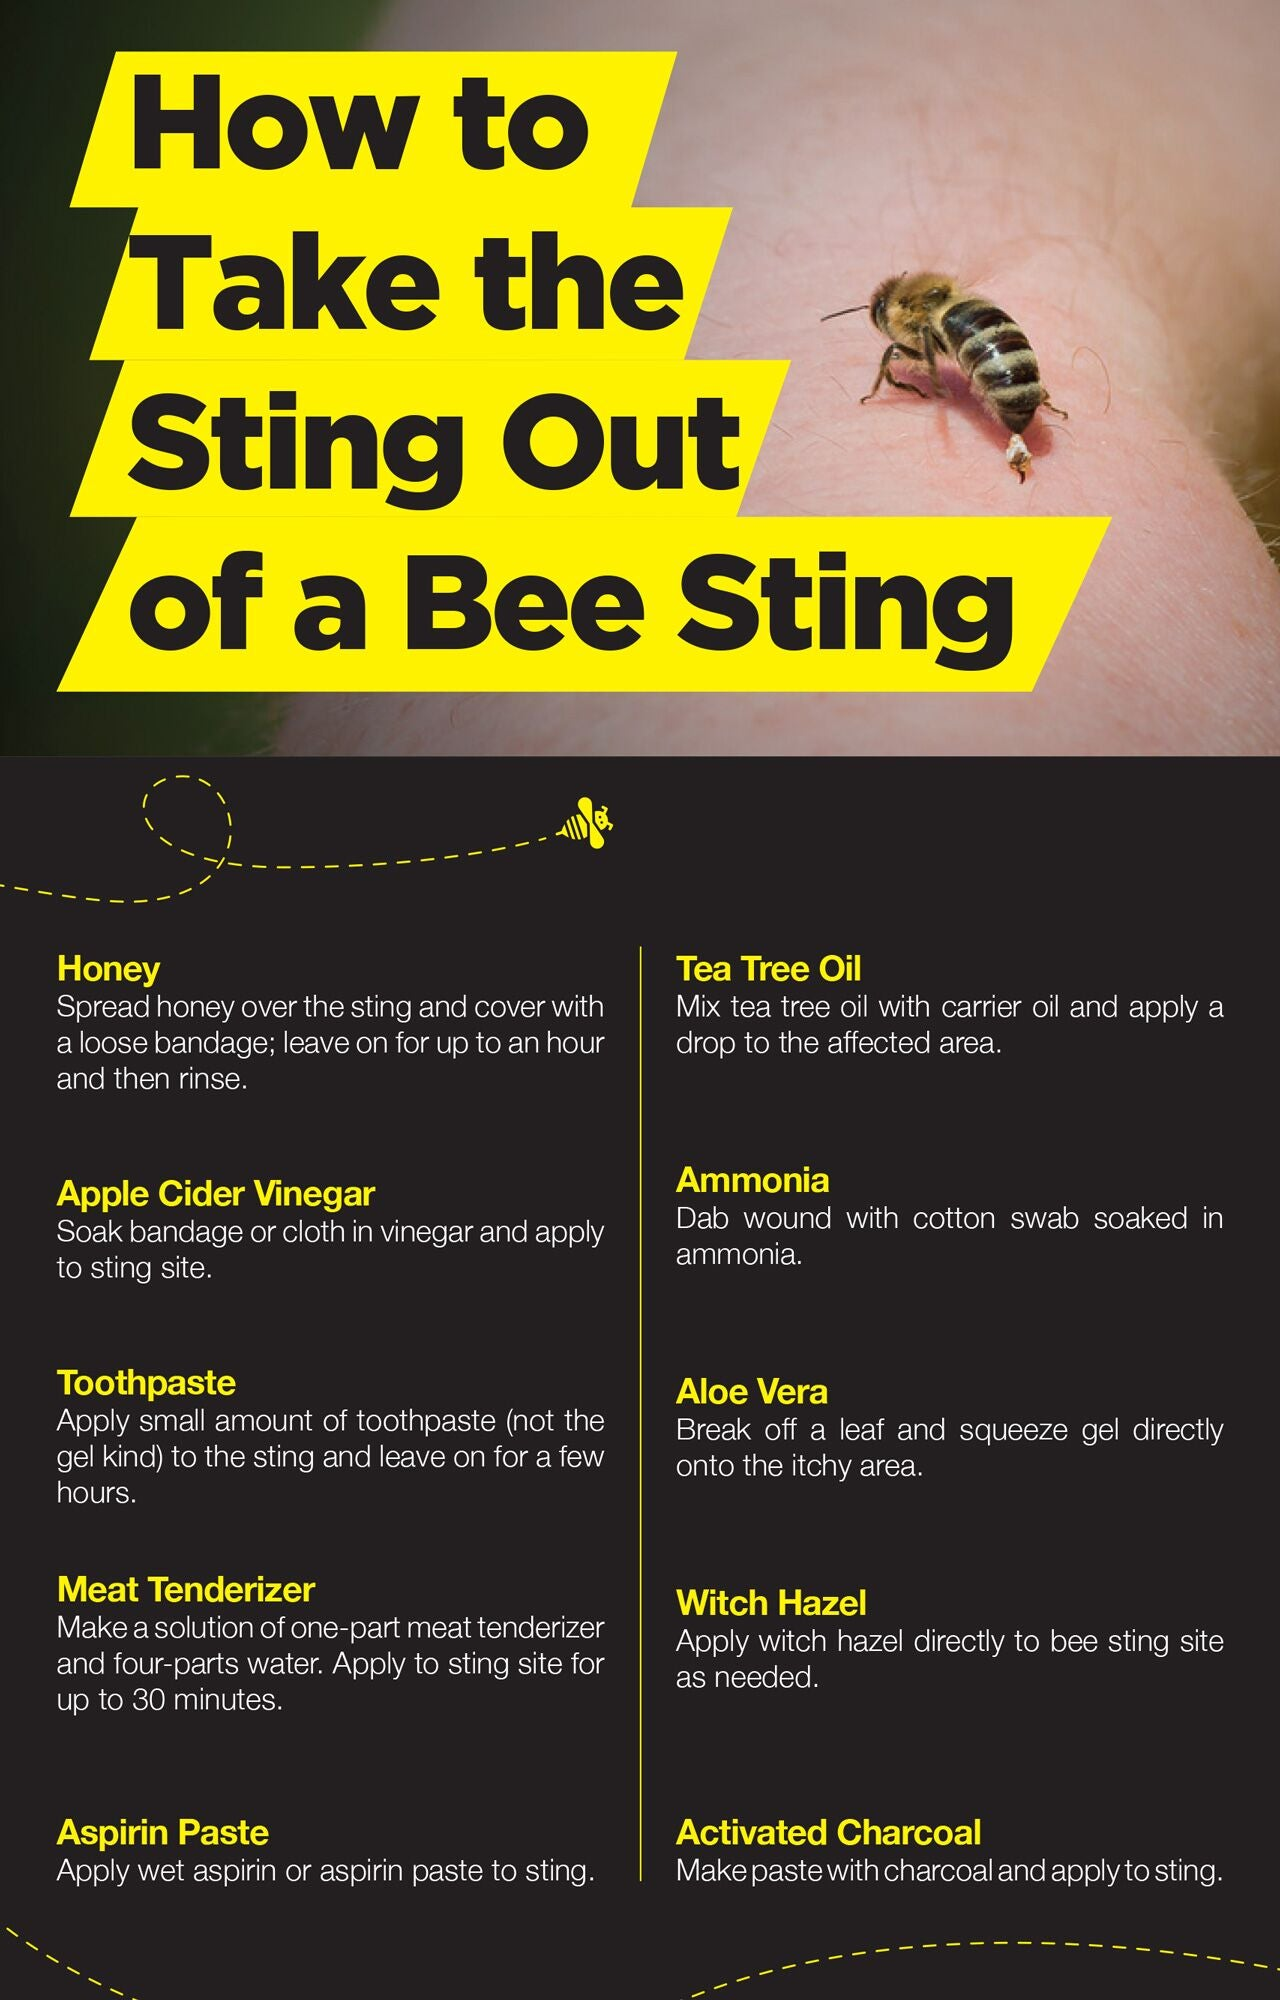 How to take the sting out of a bee sting